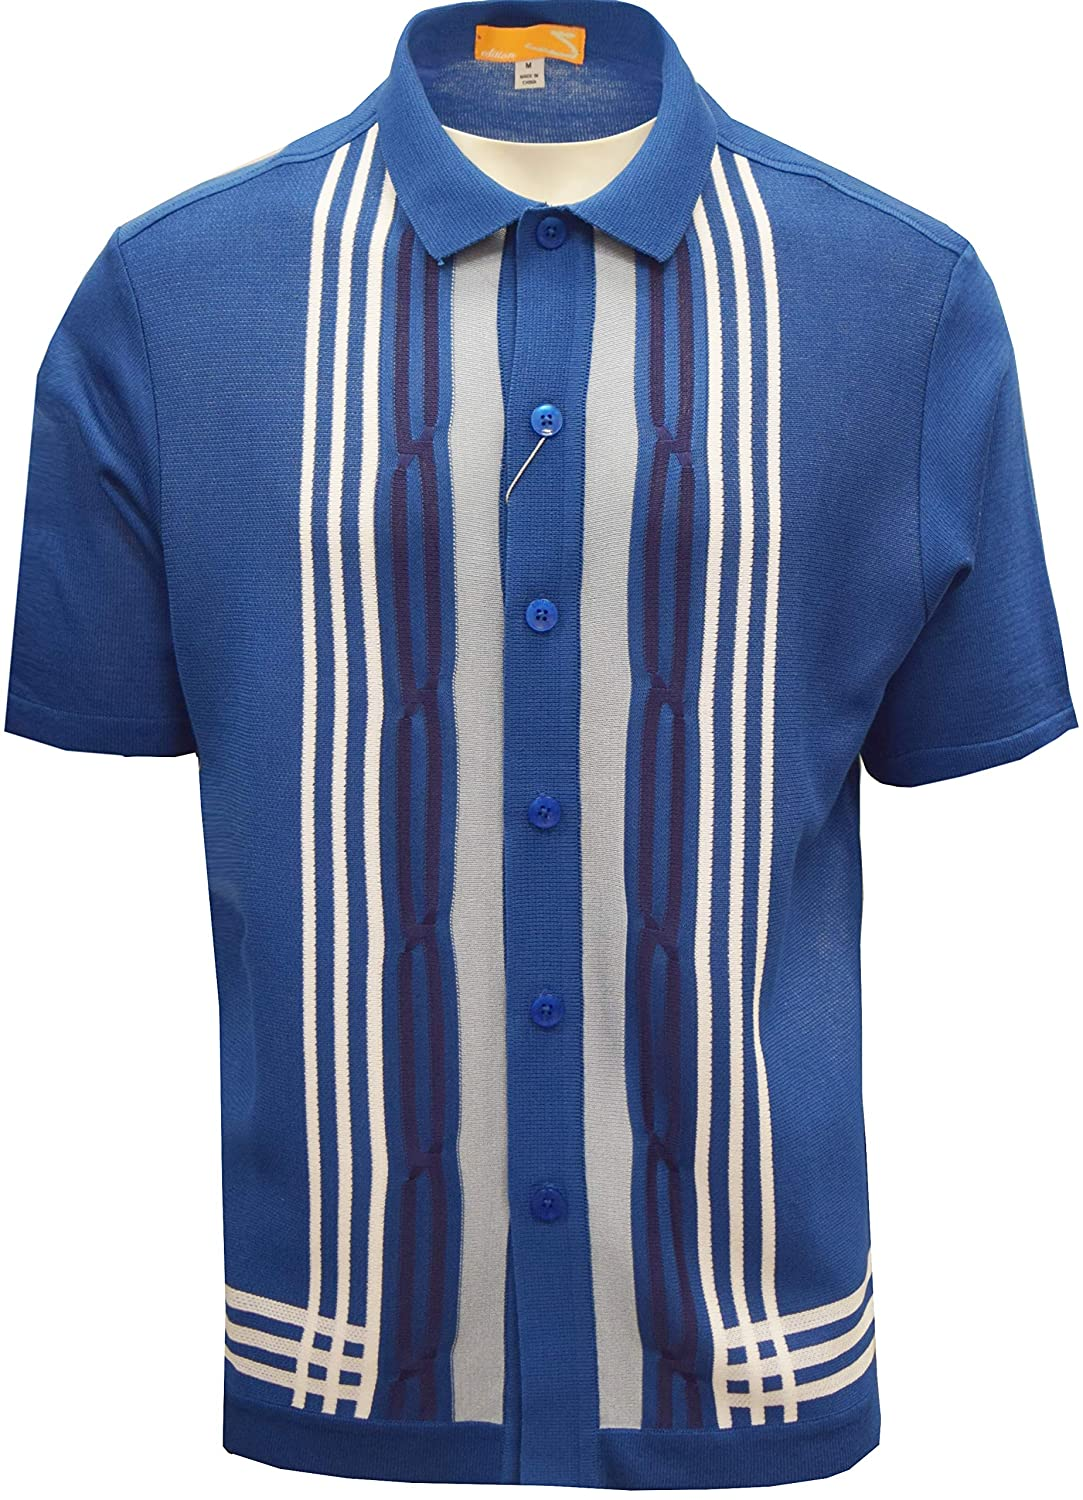 Retro Clothing for Men | Vintage Men's Fashion SAFIRE SILK INC. Edition S Mens Short Sleeve Knit Shirt - California Rockabilly Style: Multi Stripes $49.00 AT vintagedancer.com